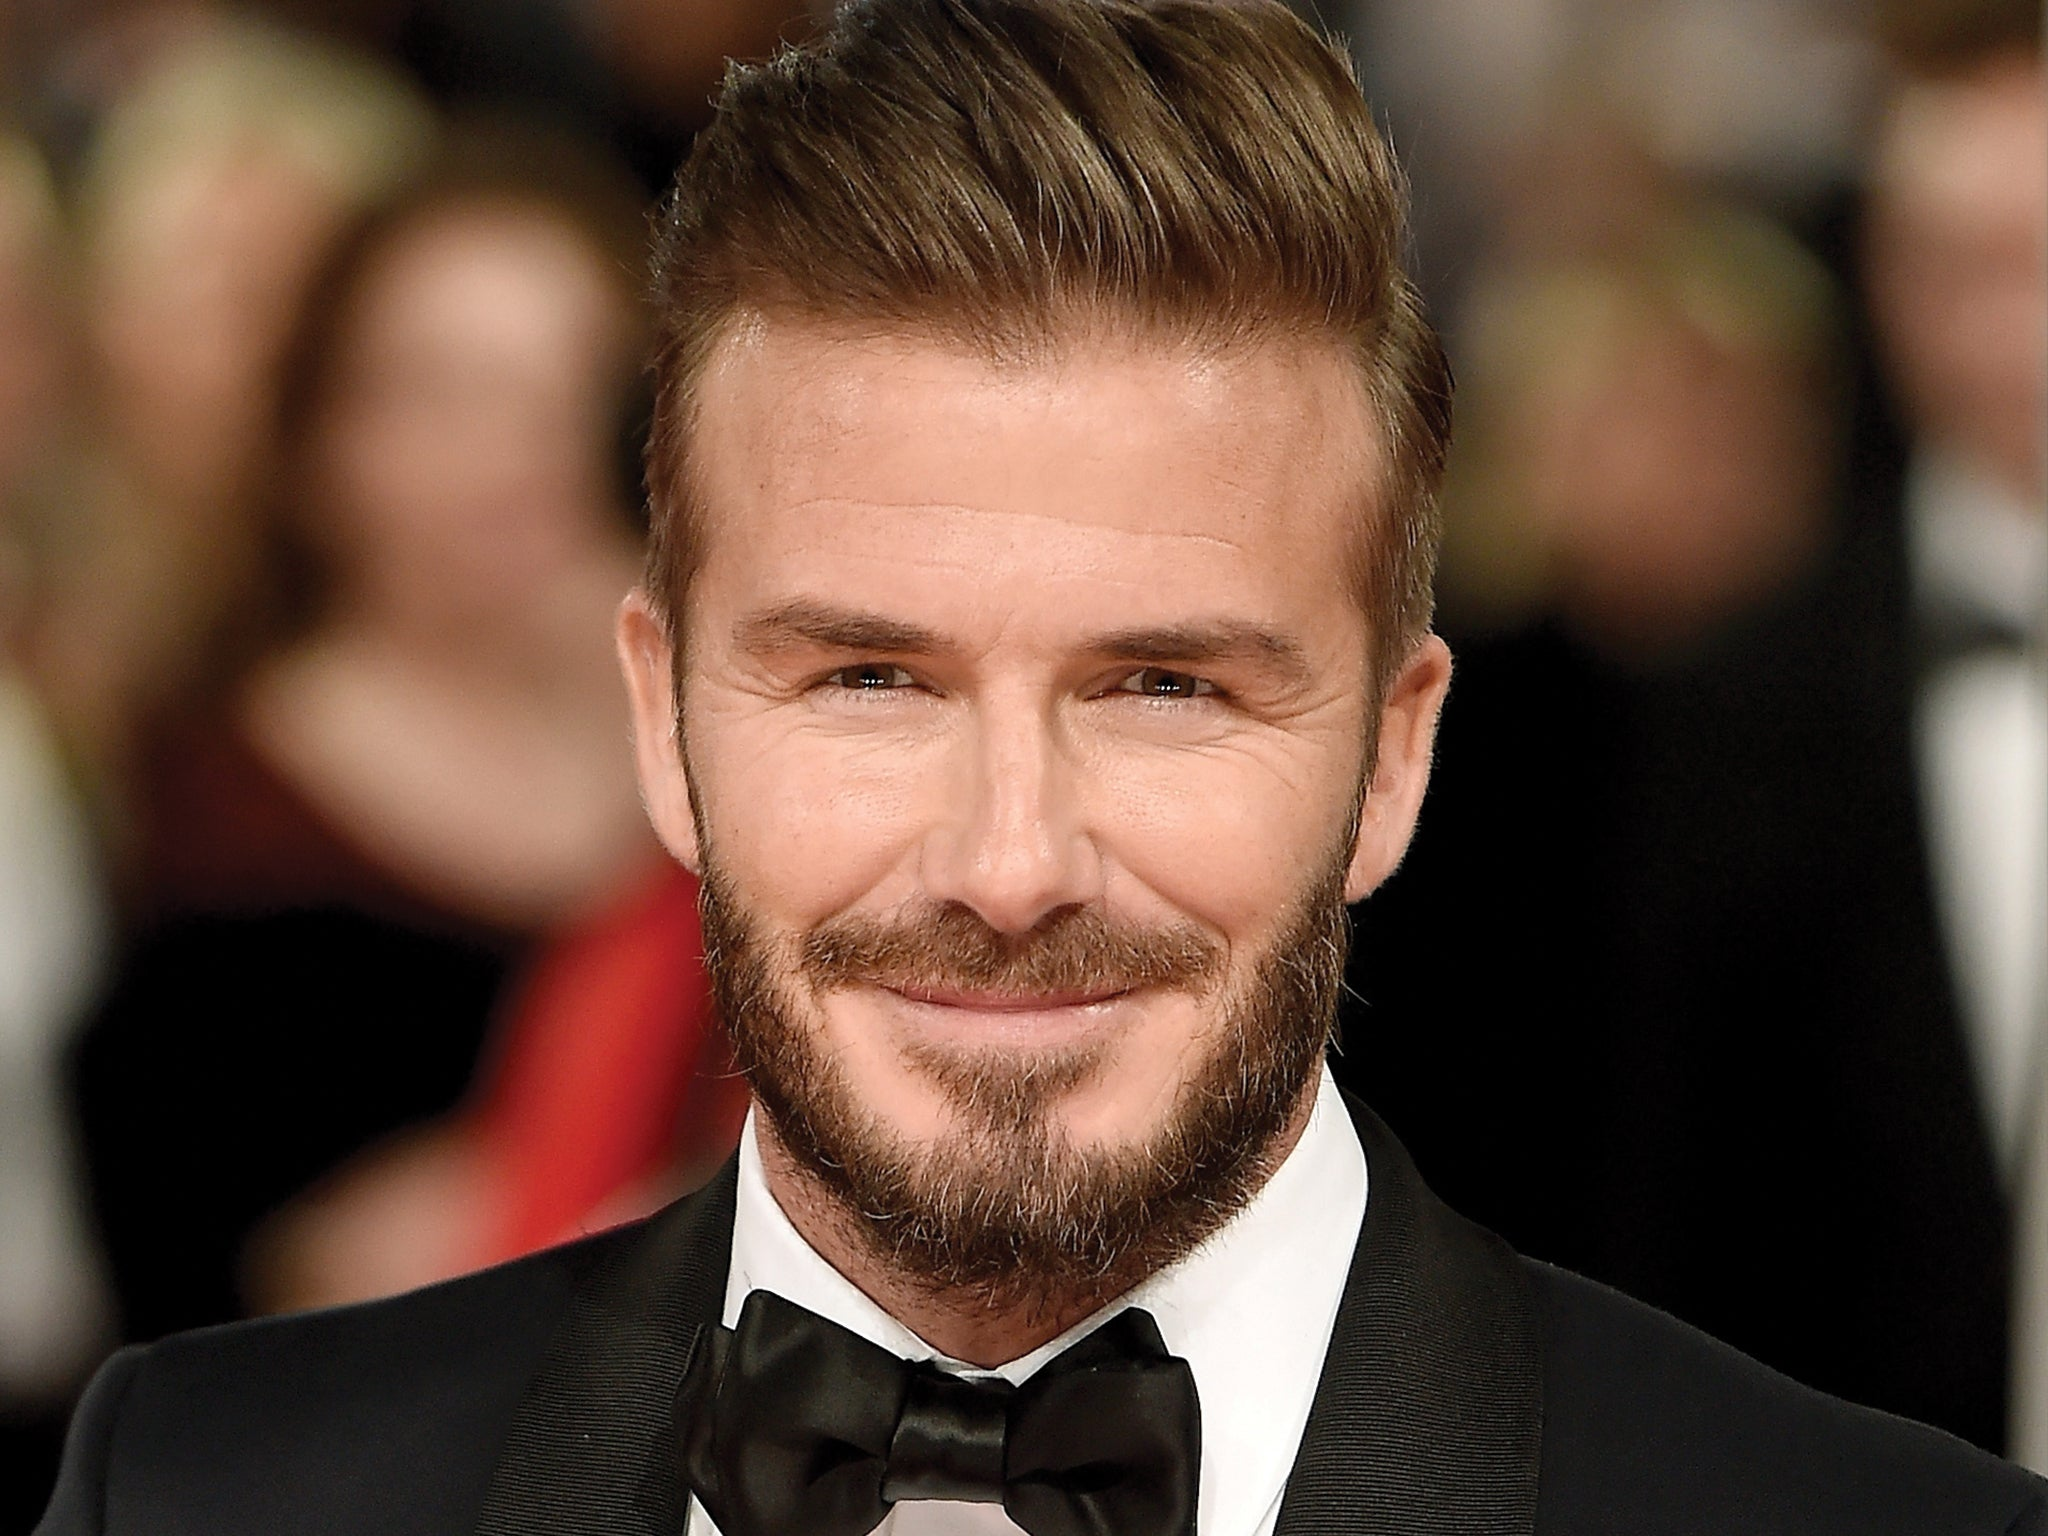 David beckham actors - David beckham ...